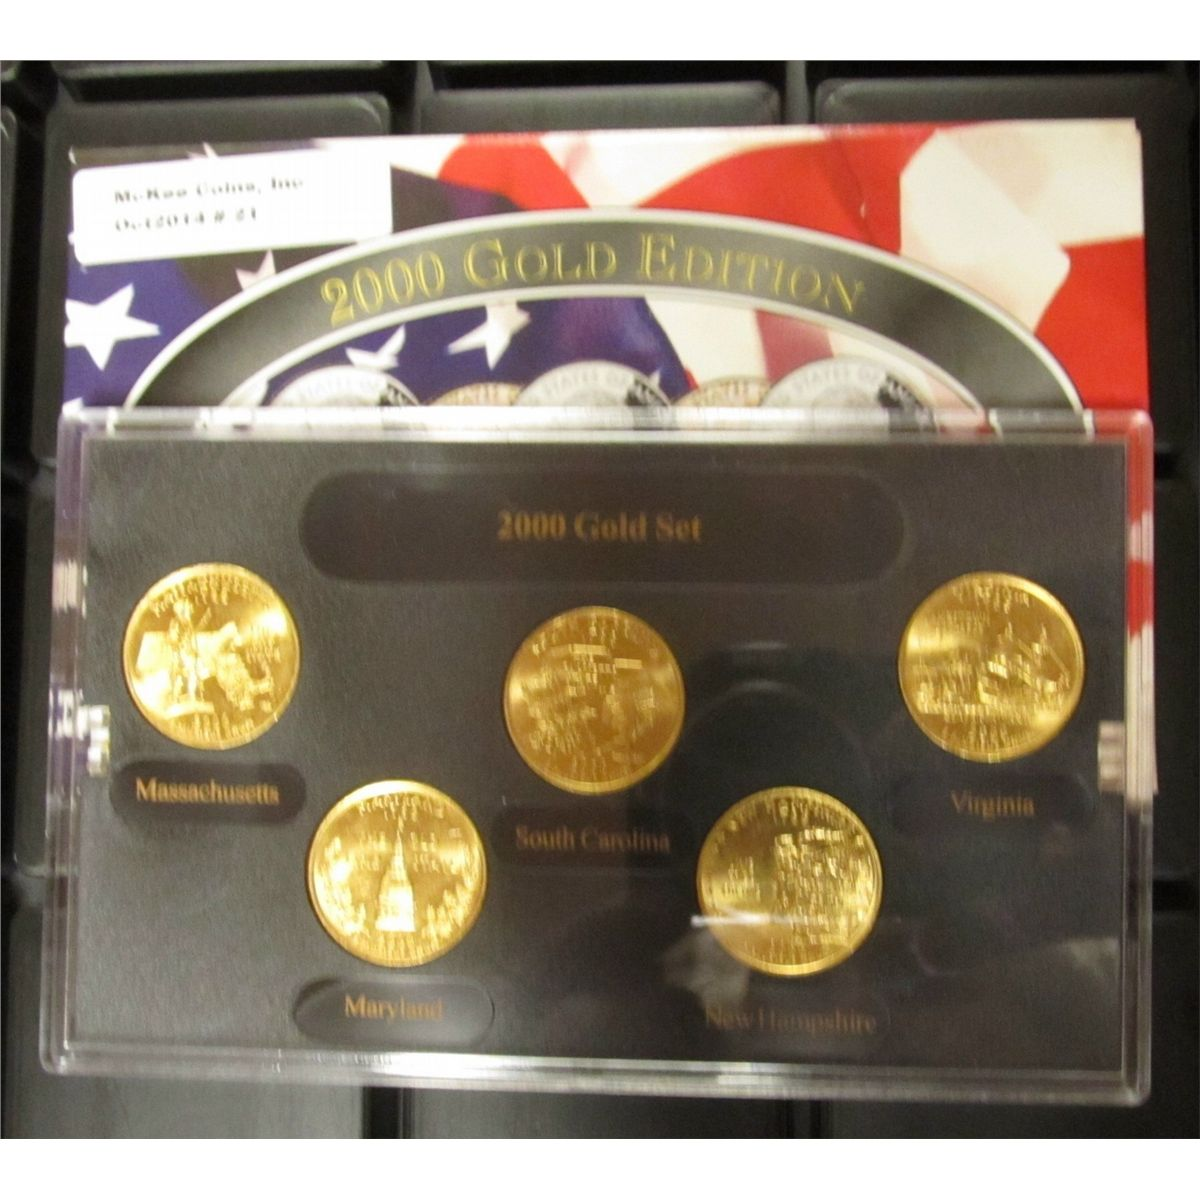 2004 gold edition state quarter collection.